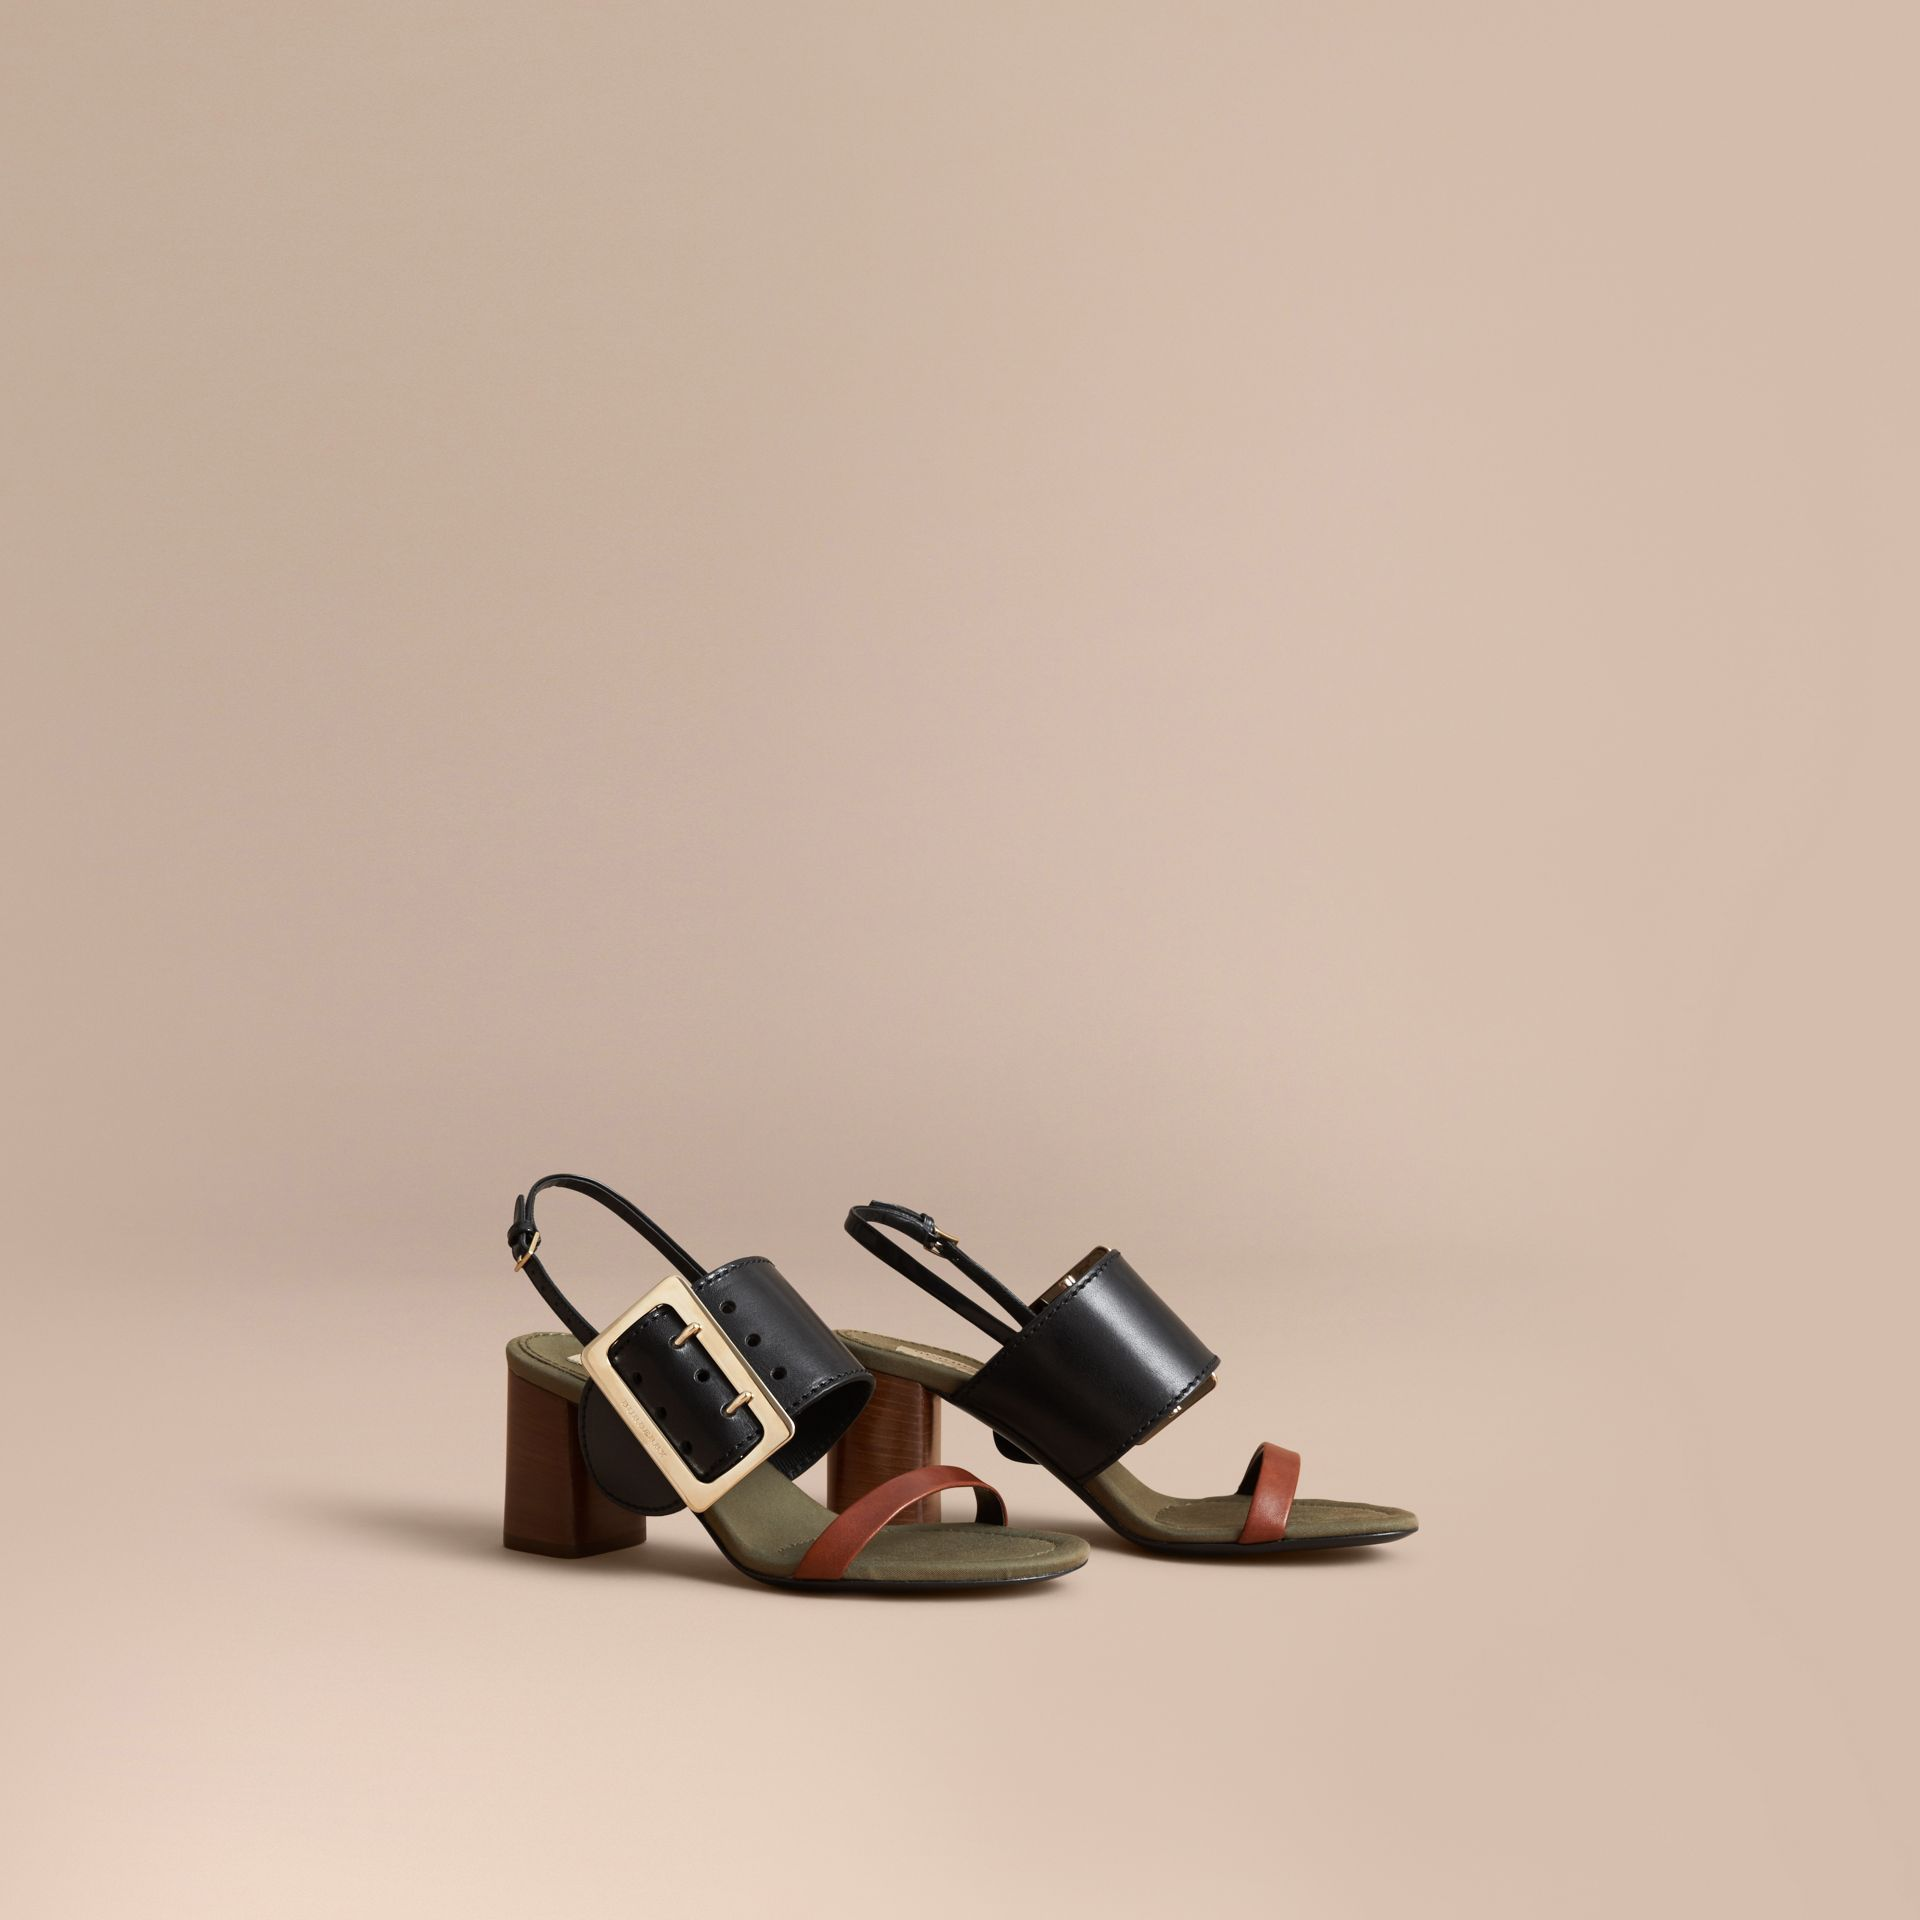 Buckle Detail Leather Sandals - Women | Burberry - gallery image 1